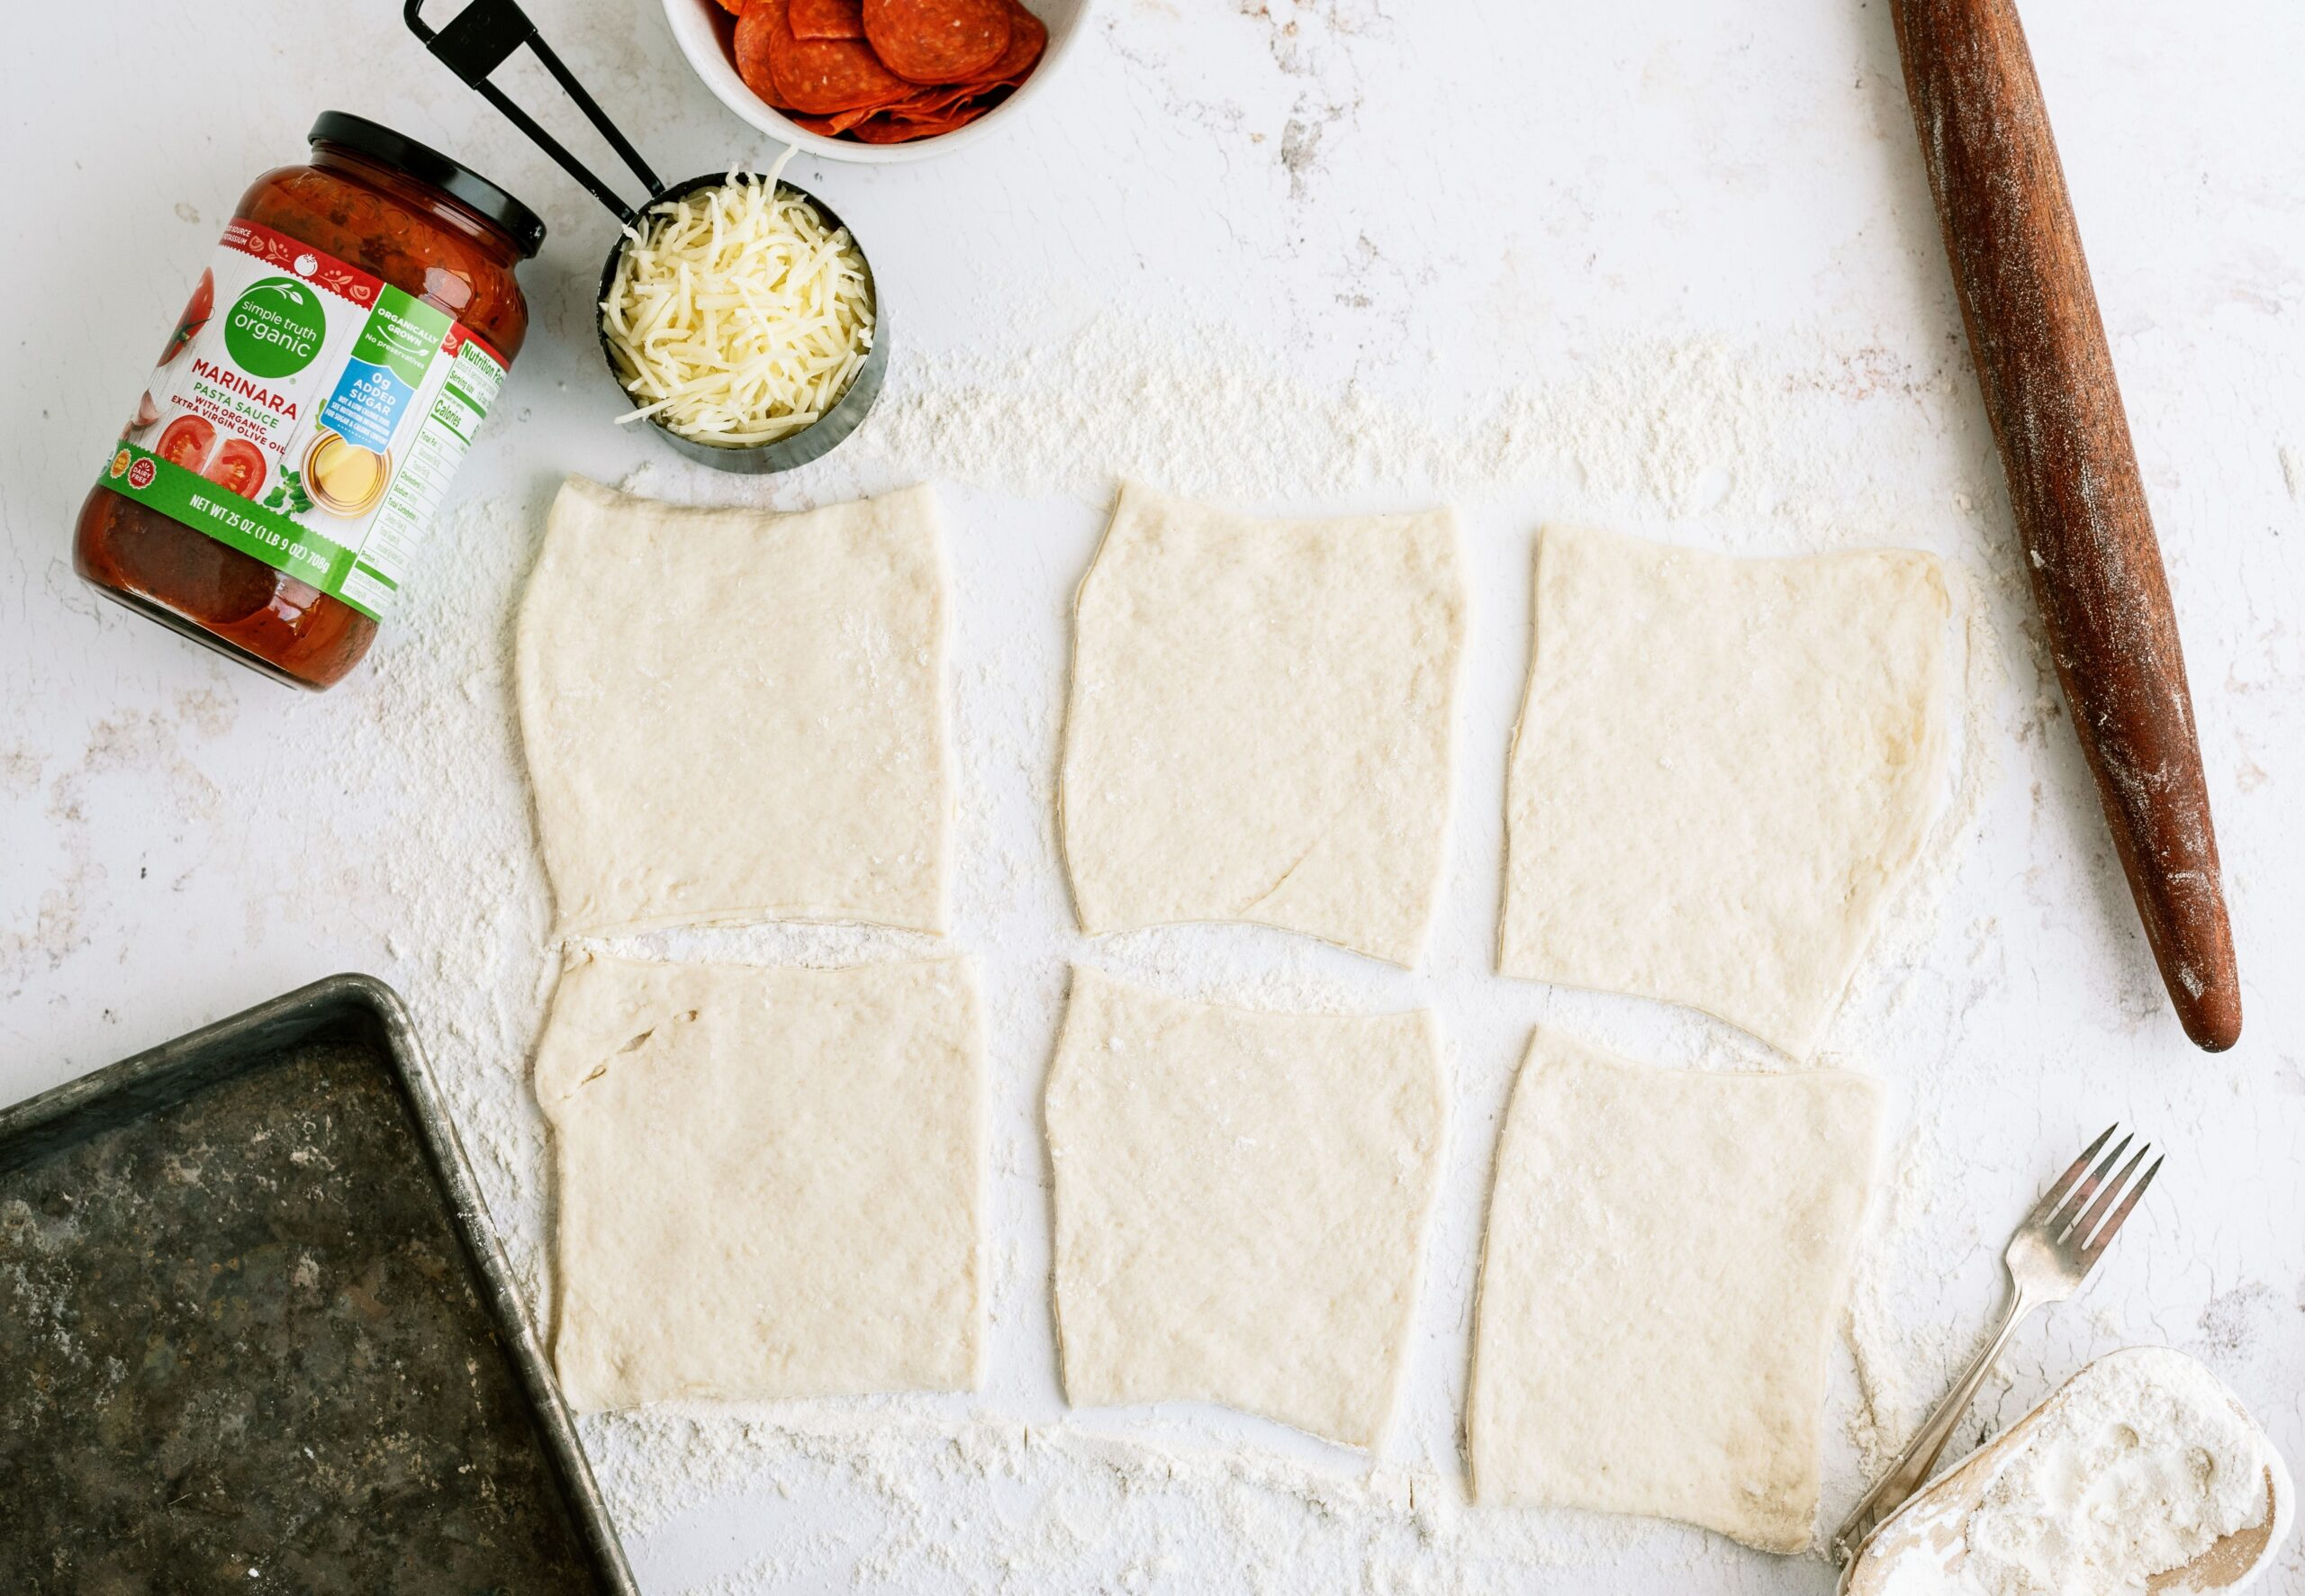 Ingredients for Quick and Easy Calzones Recipe